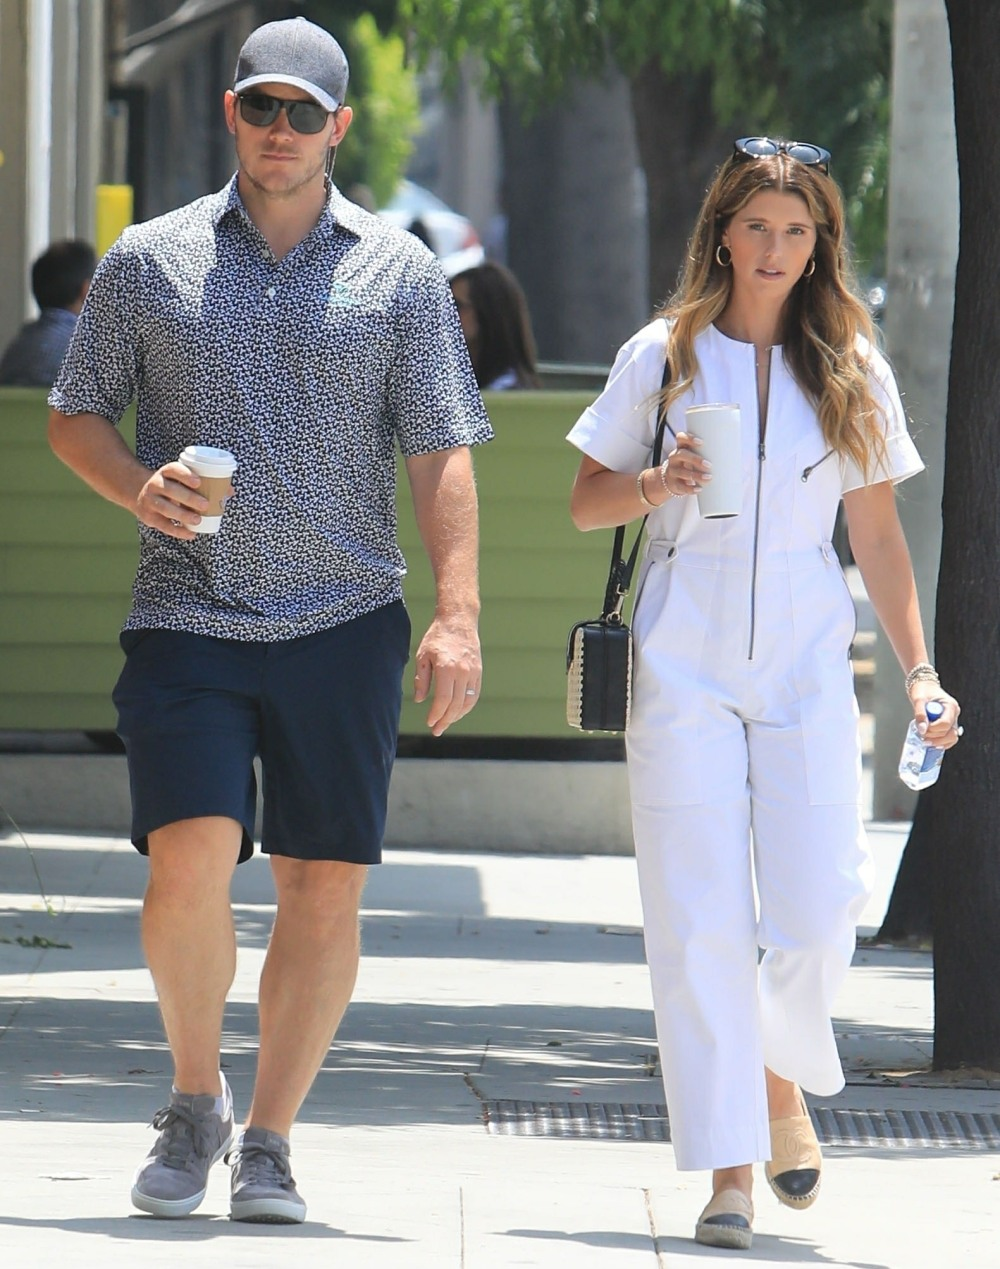 Chris Pratt and wife Katherine Schwarzenegger go out and about in West Hollywood with coffee in hand